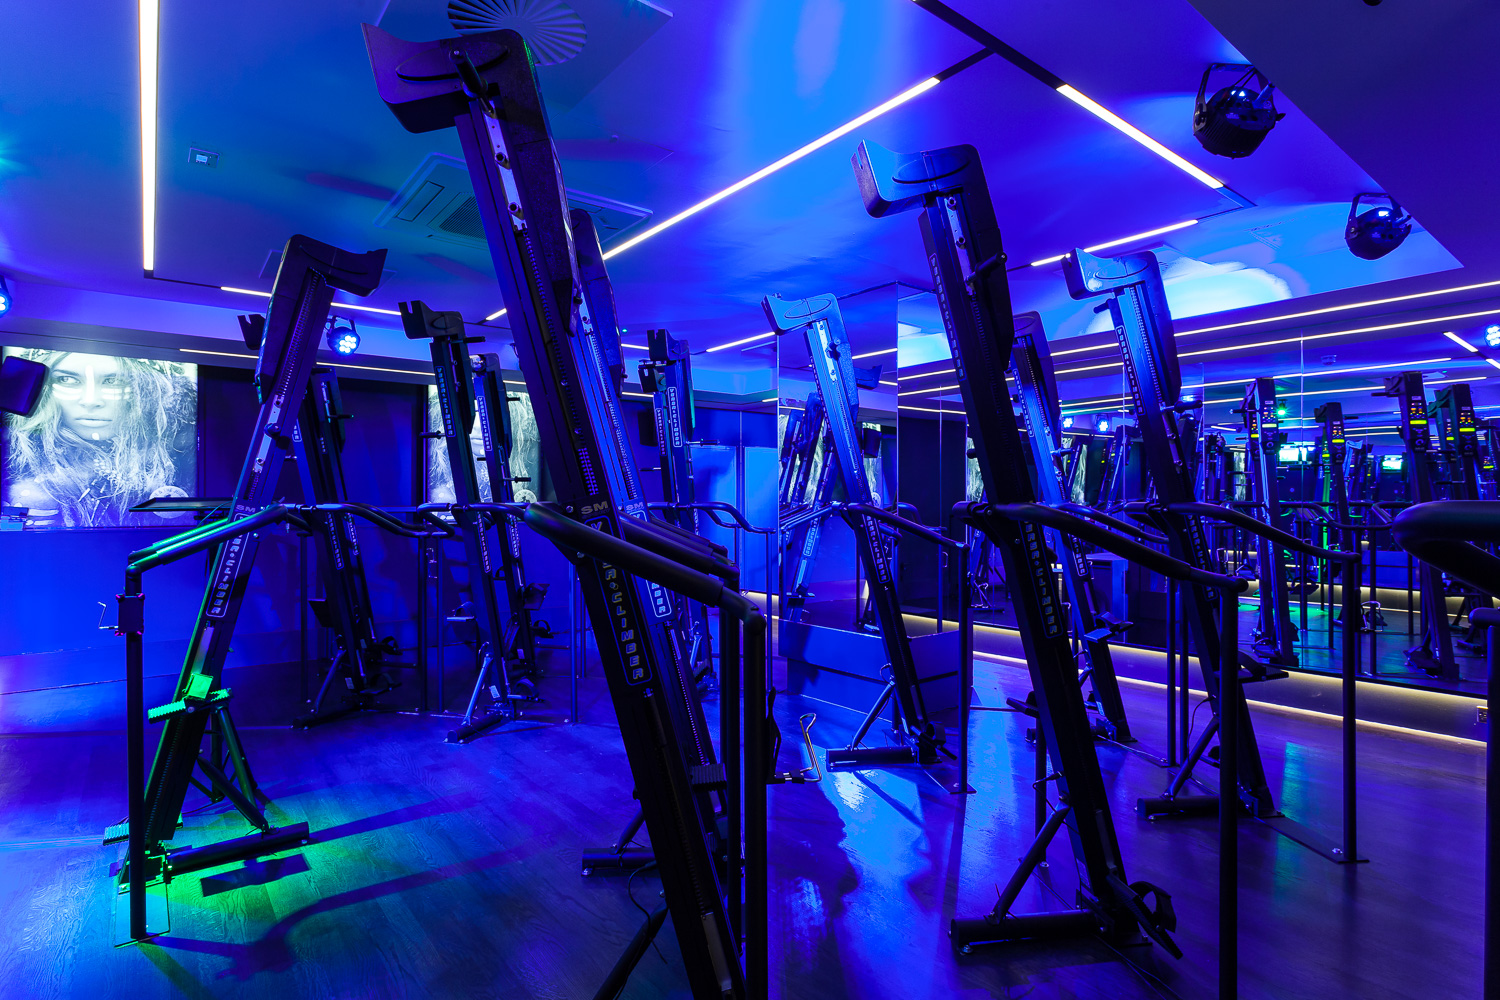 Going Up New Versaclimber Fitness Class Launched In London